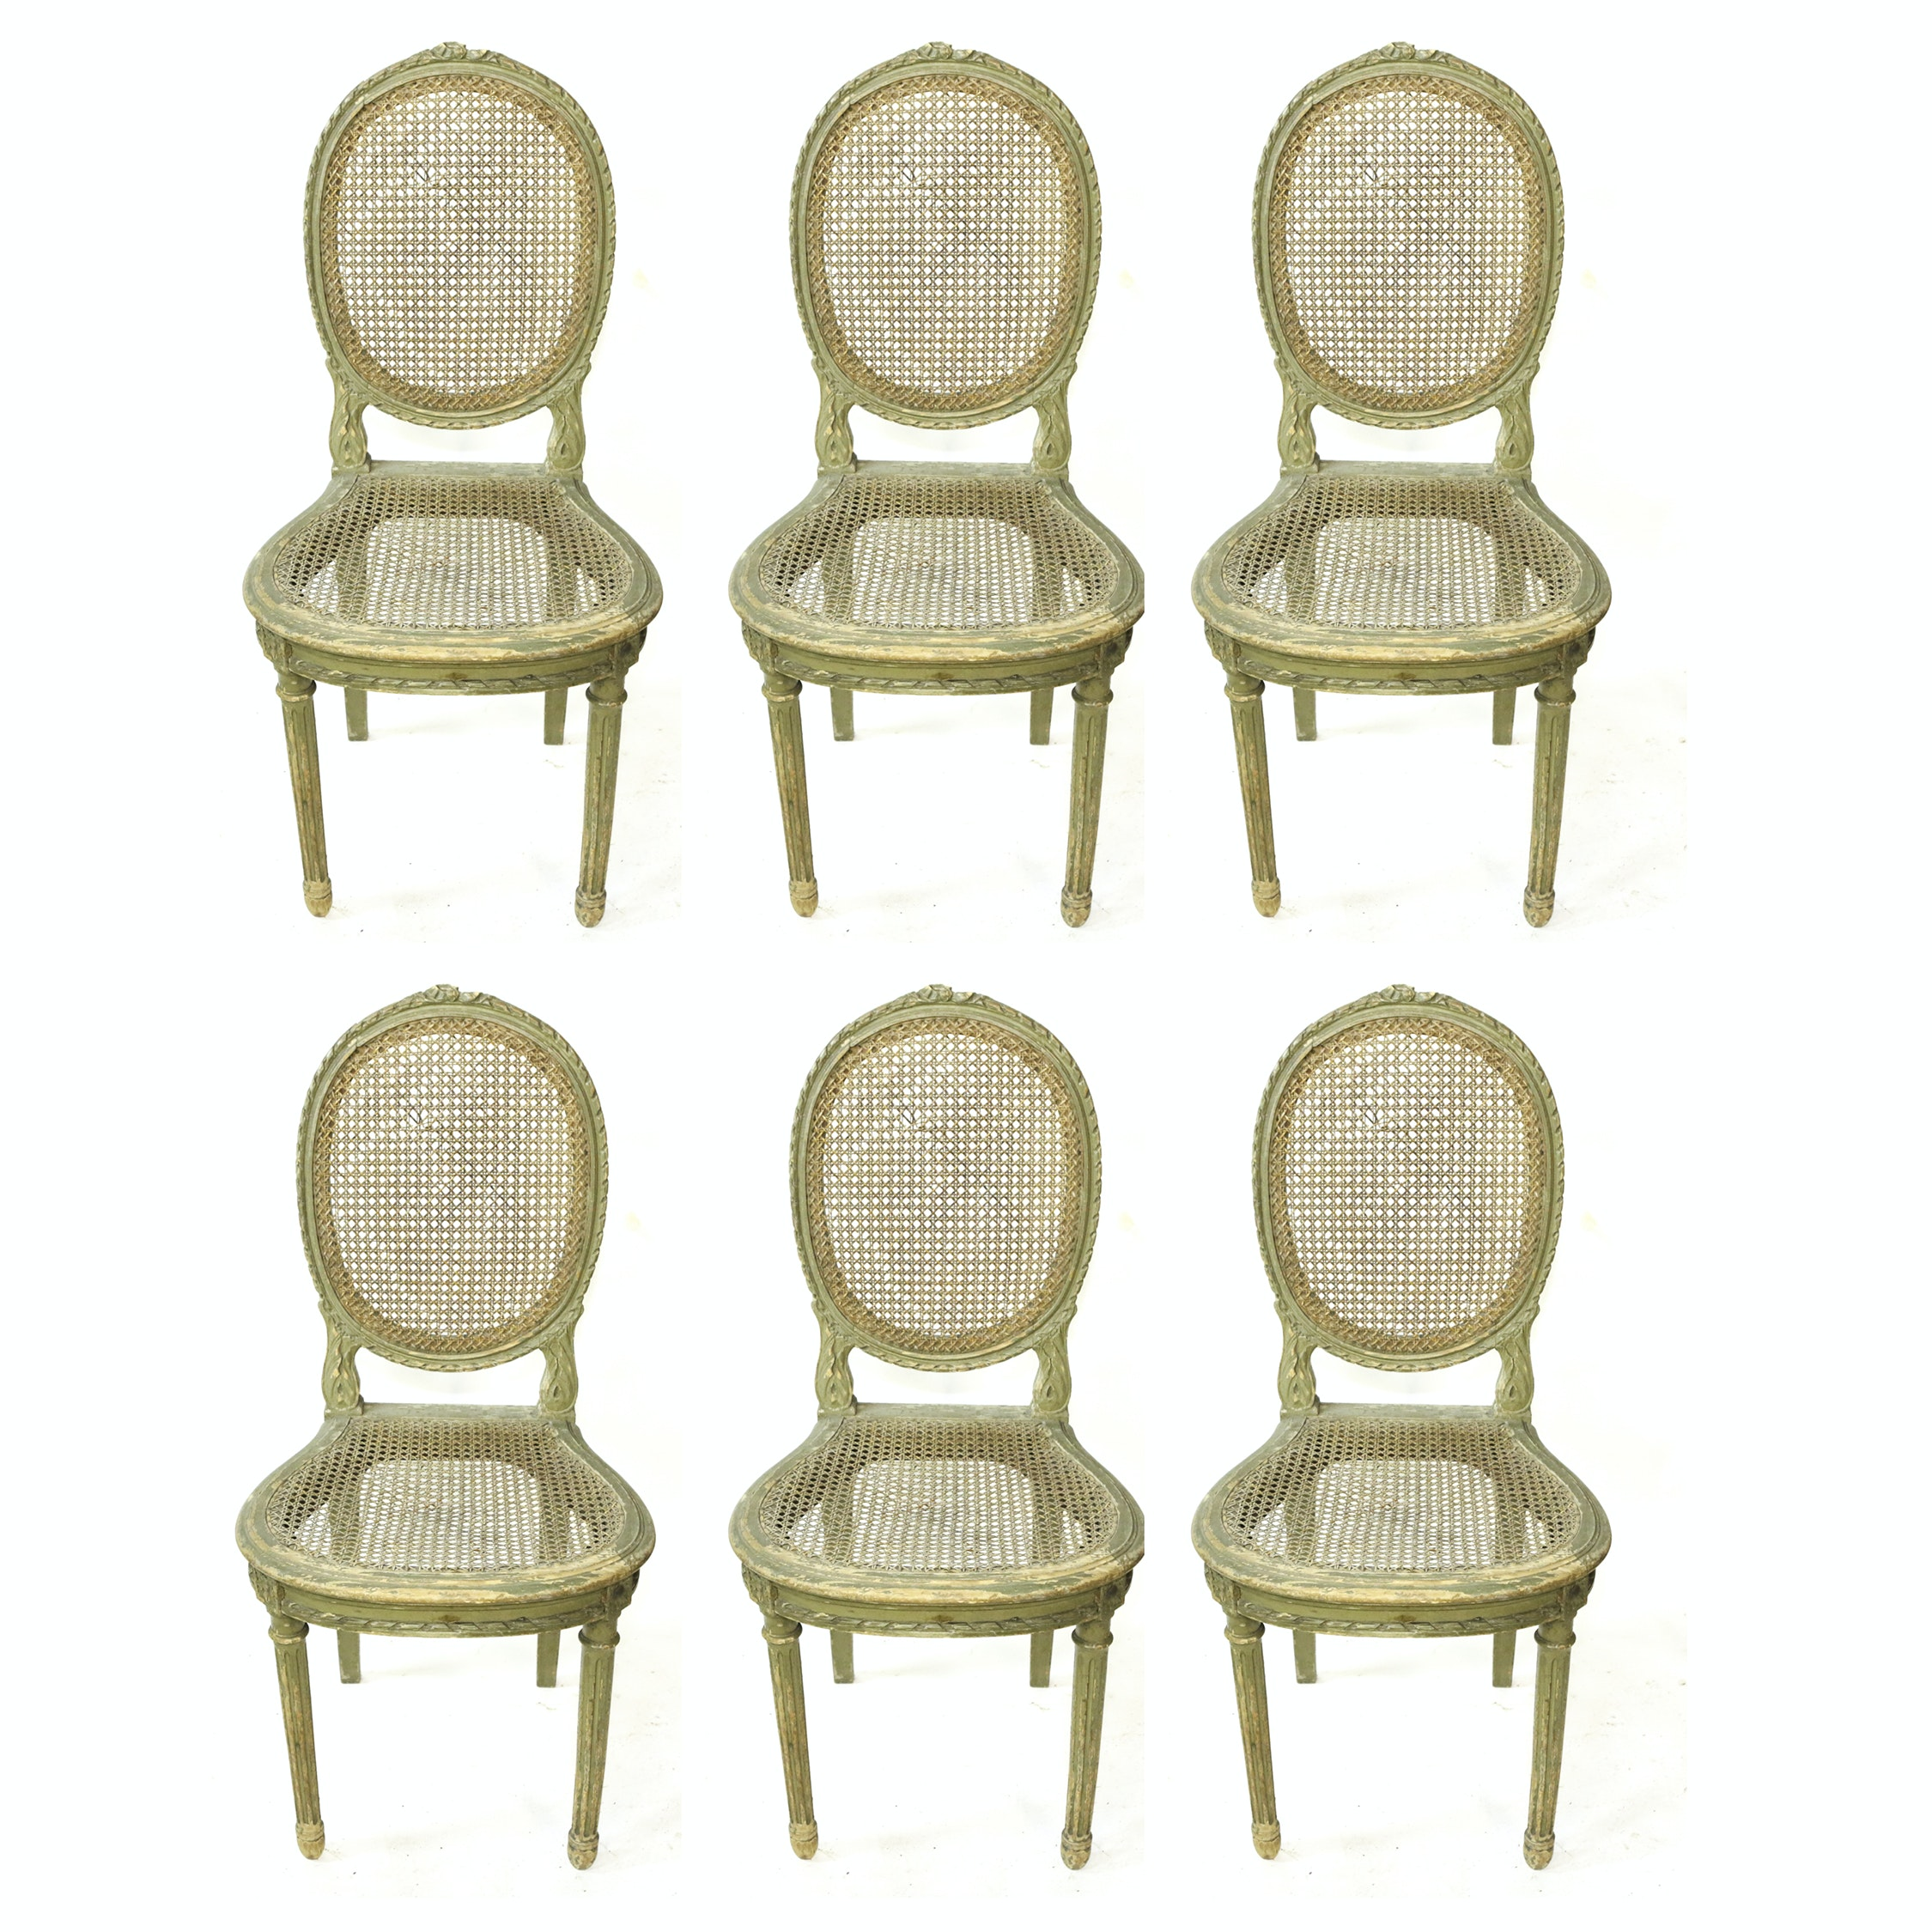 Vintage Louis XVI Style Caned Chairs